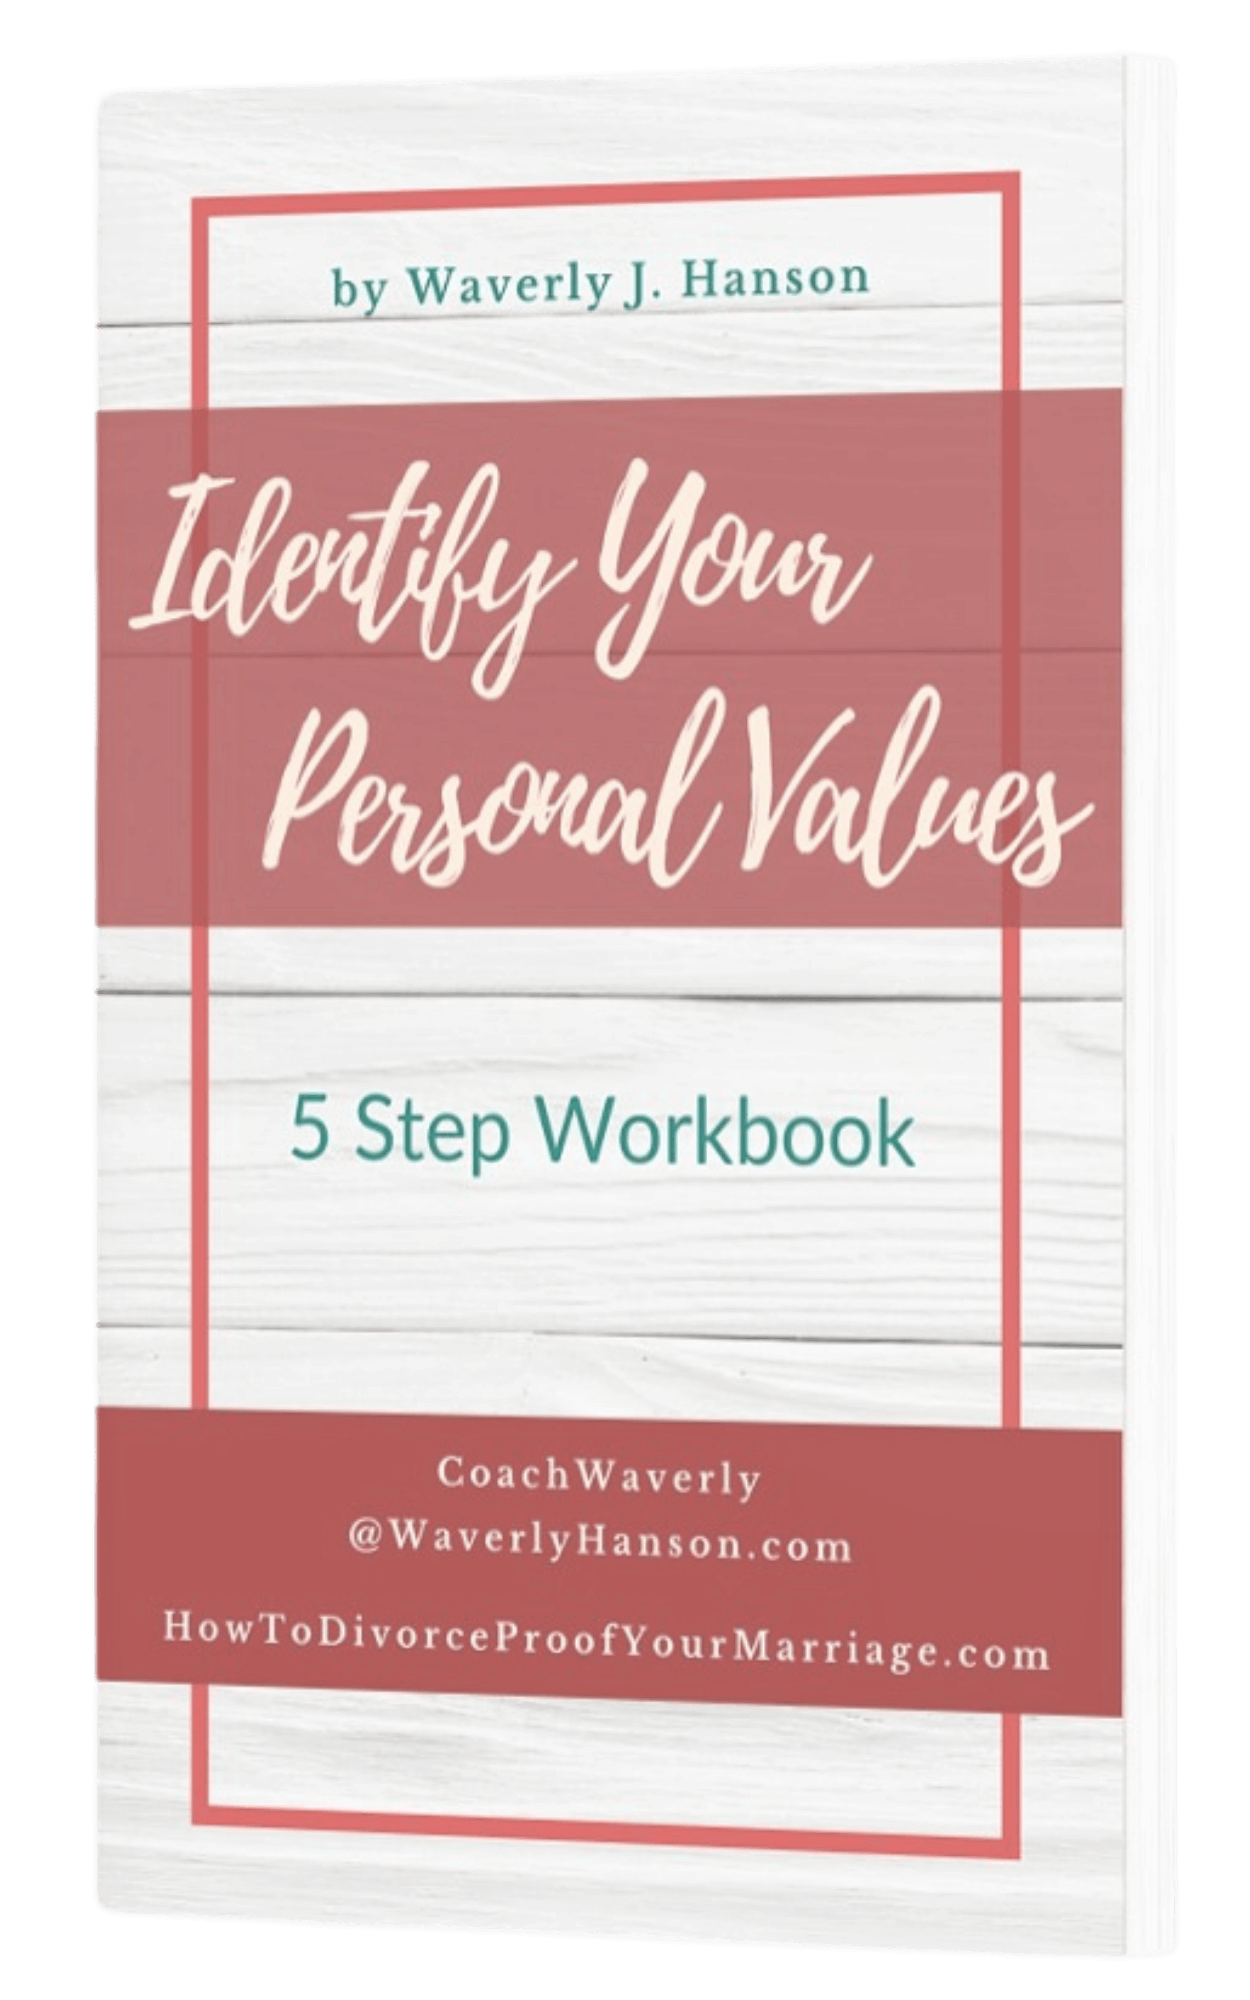 workbook product image mockup identify your personal values